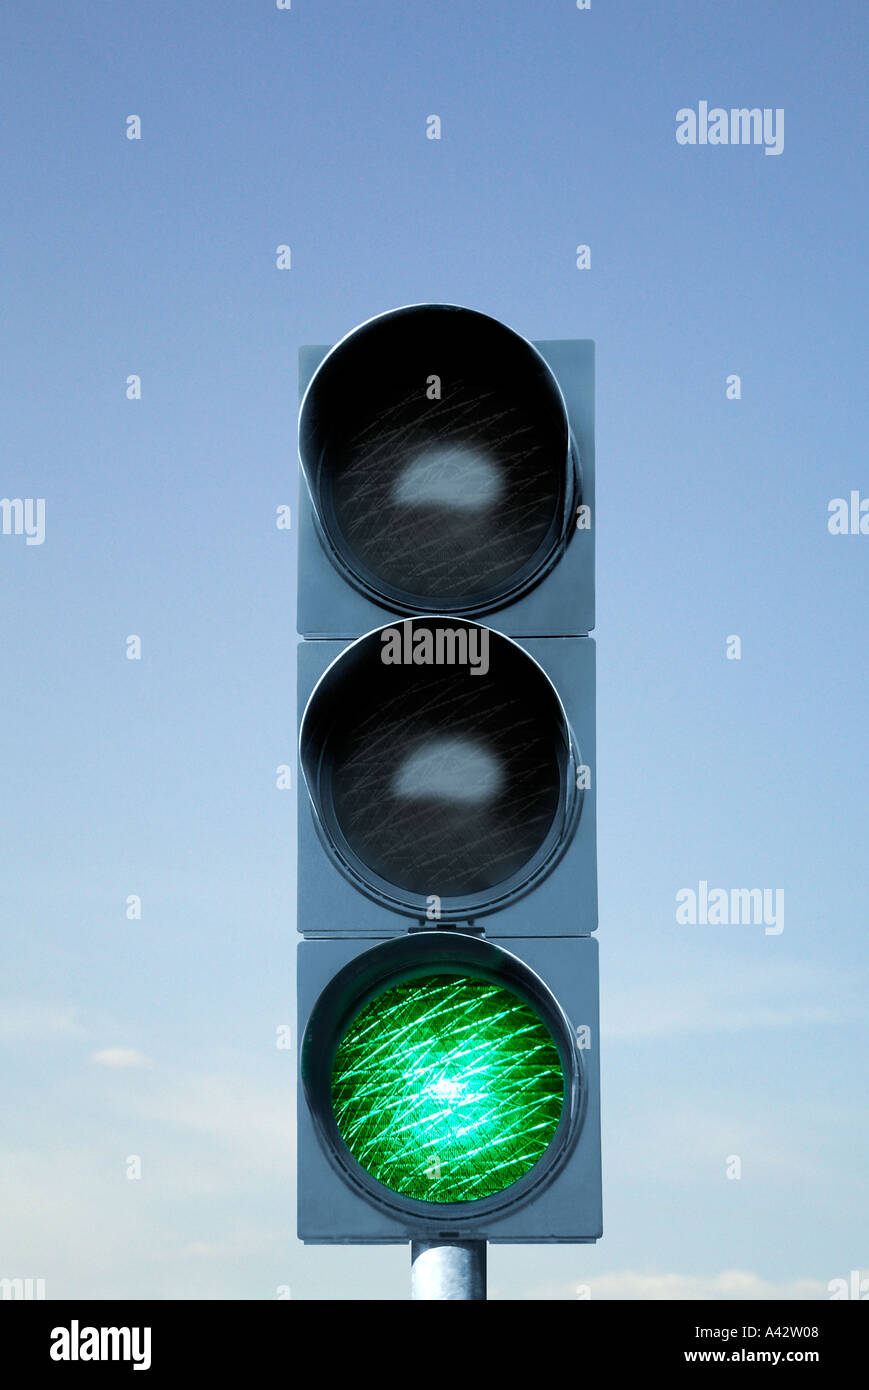 Traffic light device before blue sky Ampelanlage vor blauem Himmel Stock Photo